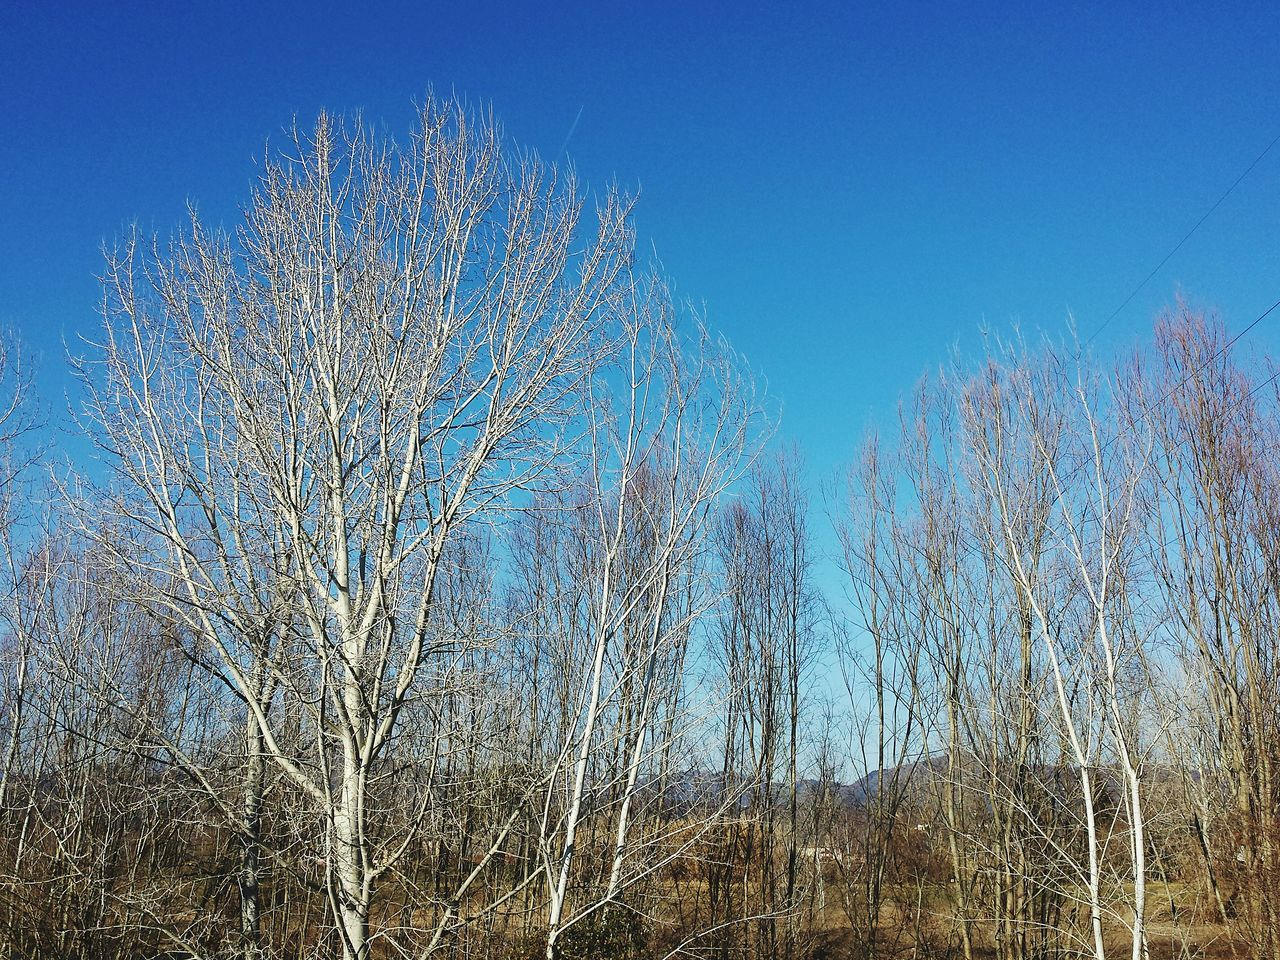 bare tree, blue, nature, tranquility, no people, clear sky, tranquil scene, outdoors, beauty in nature, tree, day, growth, forest, plant, branch, sky